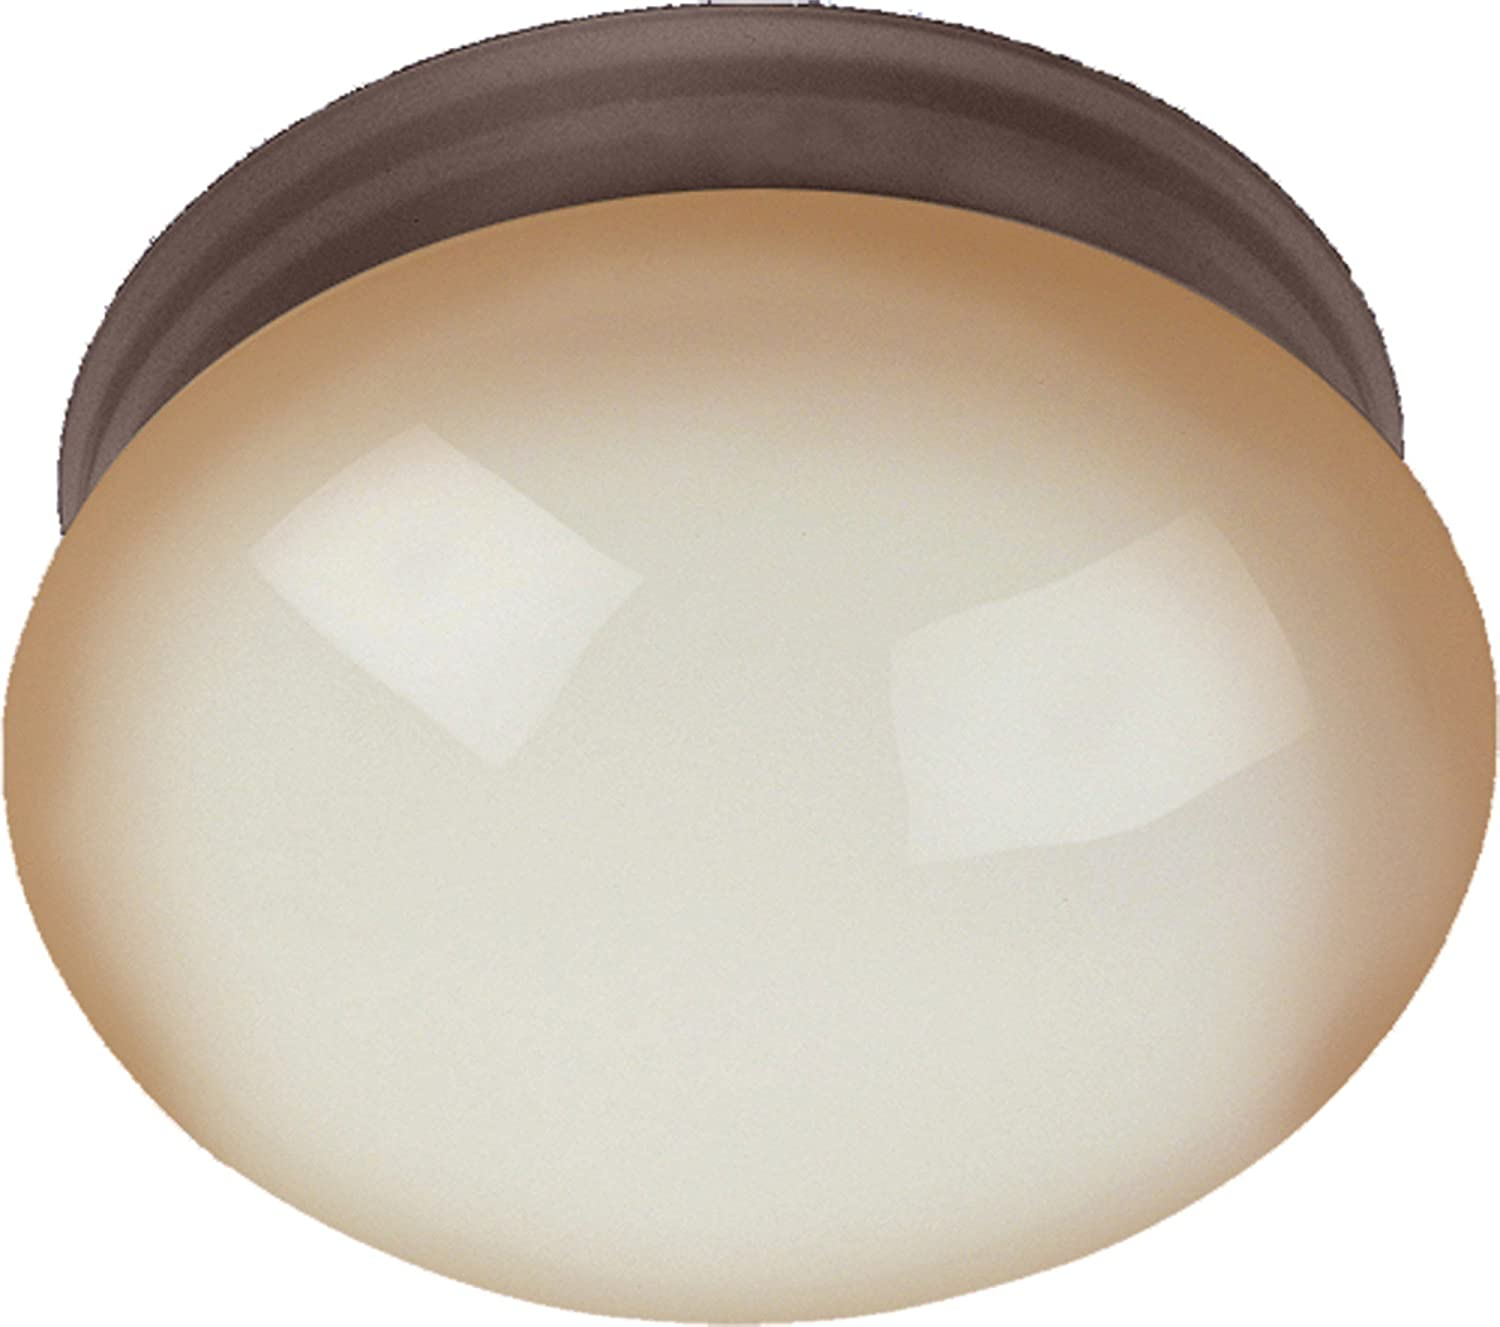 50W Max. Glass Shade Material MB Incandescent Bulb 2400 Rated Lumens Wilshire Glass 2900K Color Temp Oil Rubbed Bronze Finish Maxim 5887WSOI Essentials 2-Light Flush Mount Standard Dimmable Damp Safety Rating